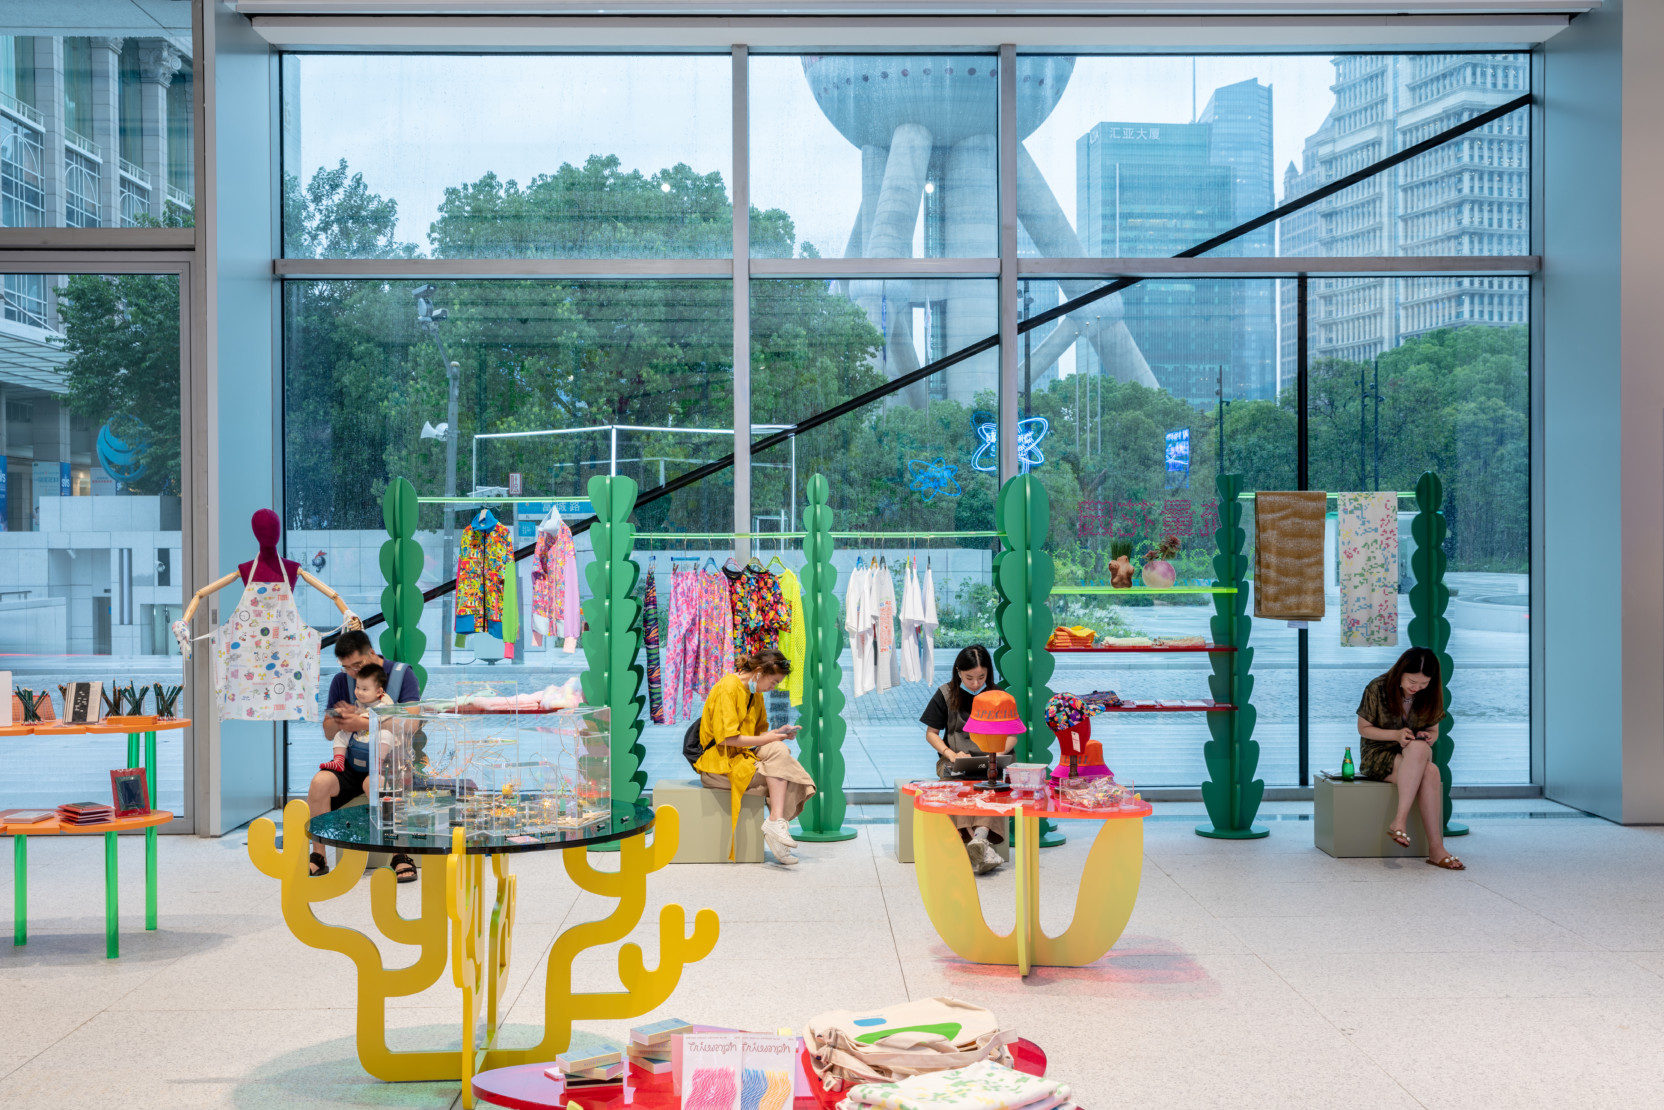 Installation view of Cyber Garden, a Special Special pop-up at Museum of Art Pudong, Shanghai, China. Image courtesy of Special Special.